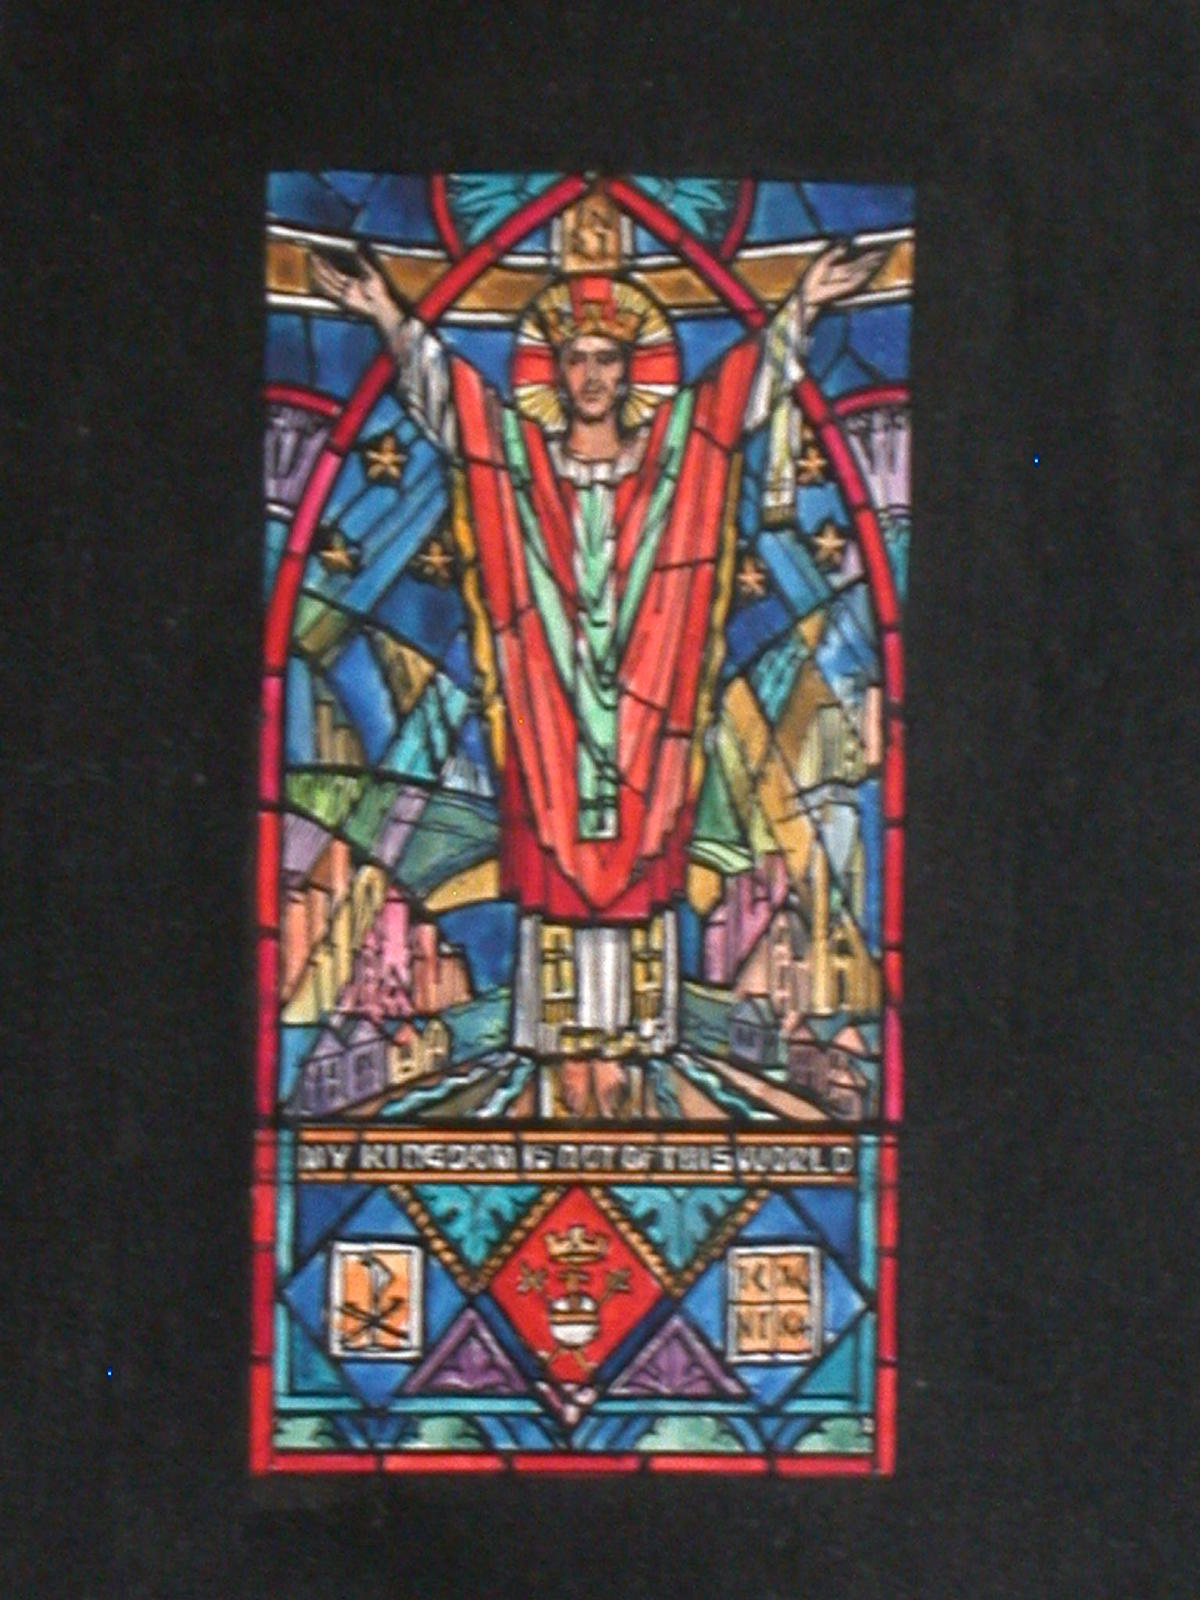 """[Design drawing for stained glass window with text """"My Kingdom is not of this World,"""" showing resplendent, crowned Christ on Cross with stars, architecture, Chiro, etc. for Emmanuel Episcopal Church in Bristol, Virginia]"""